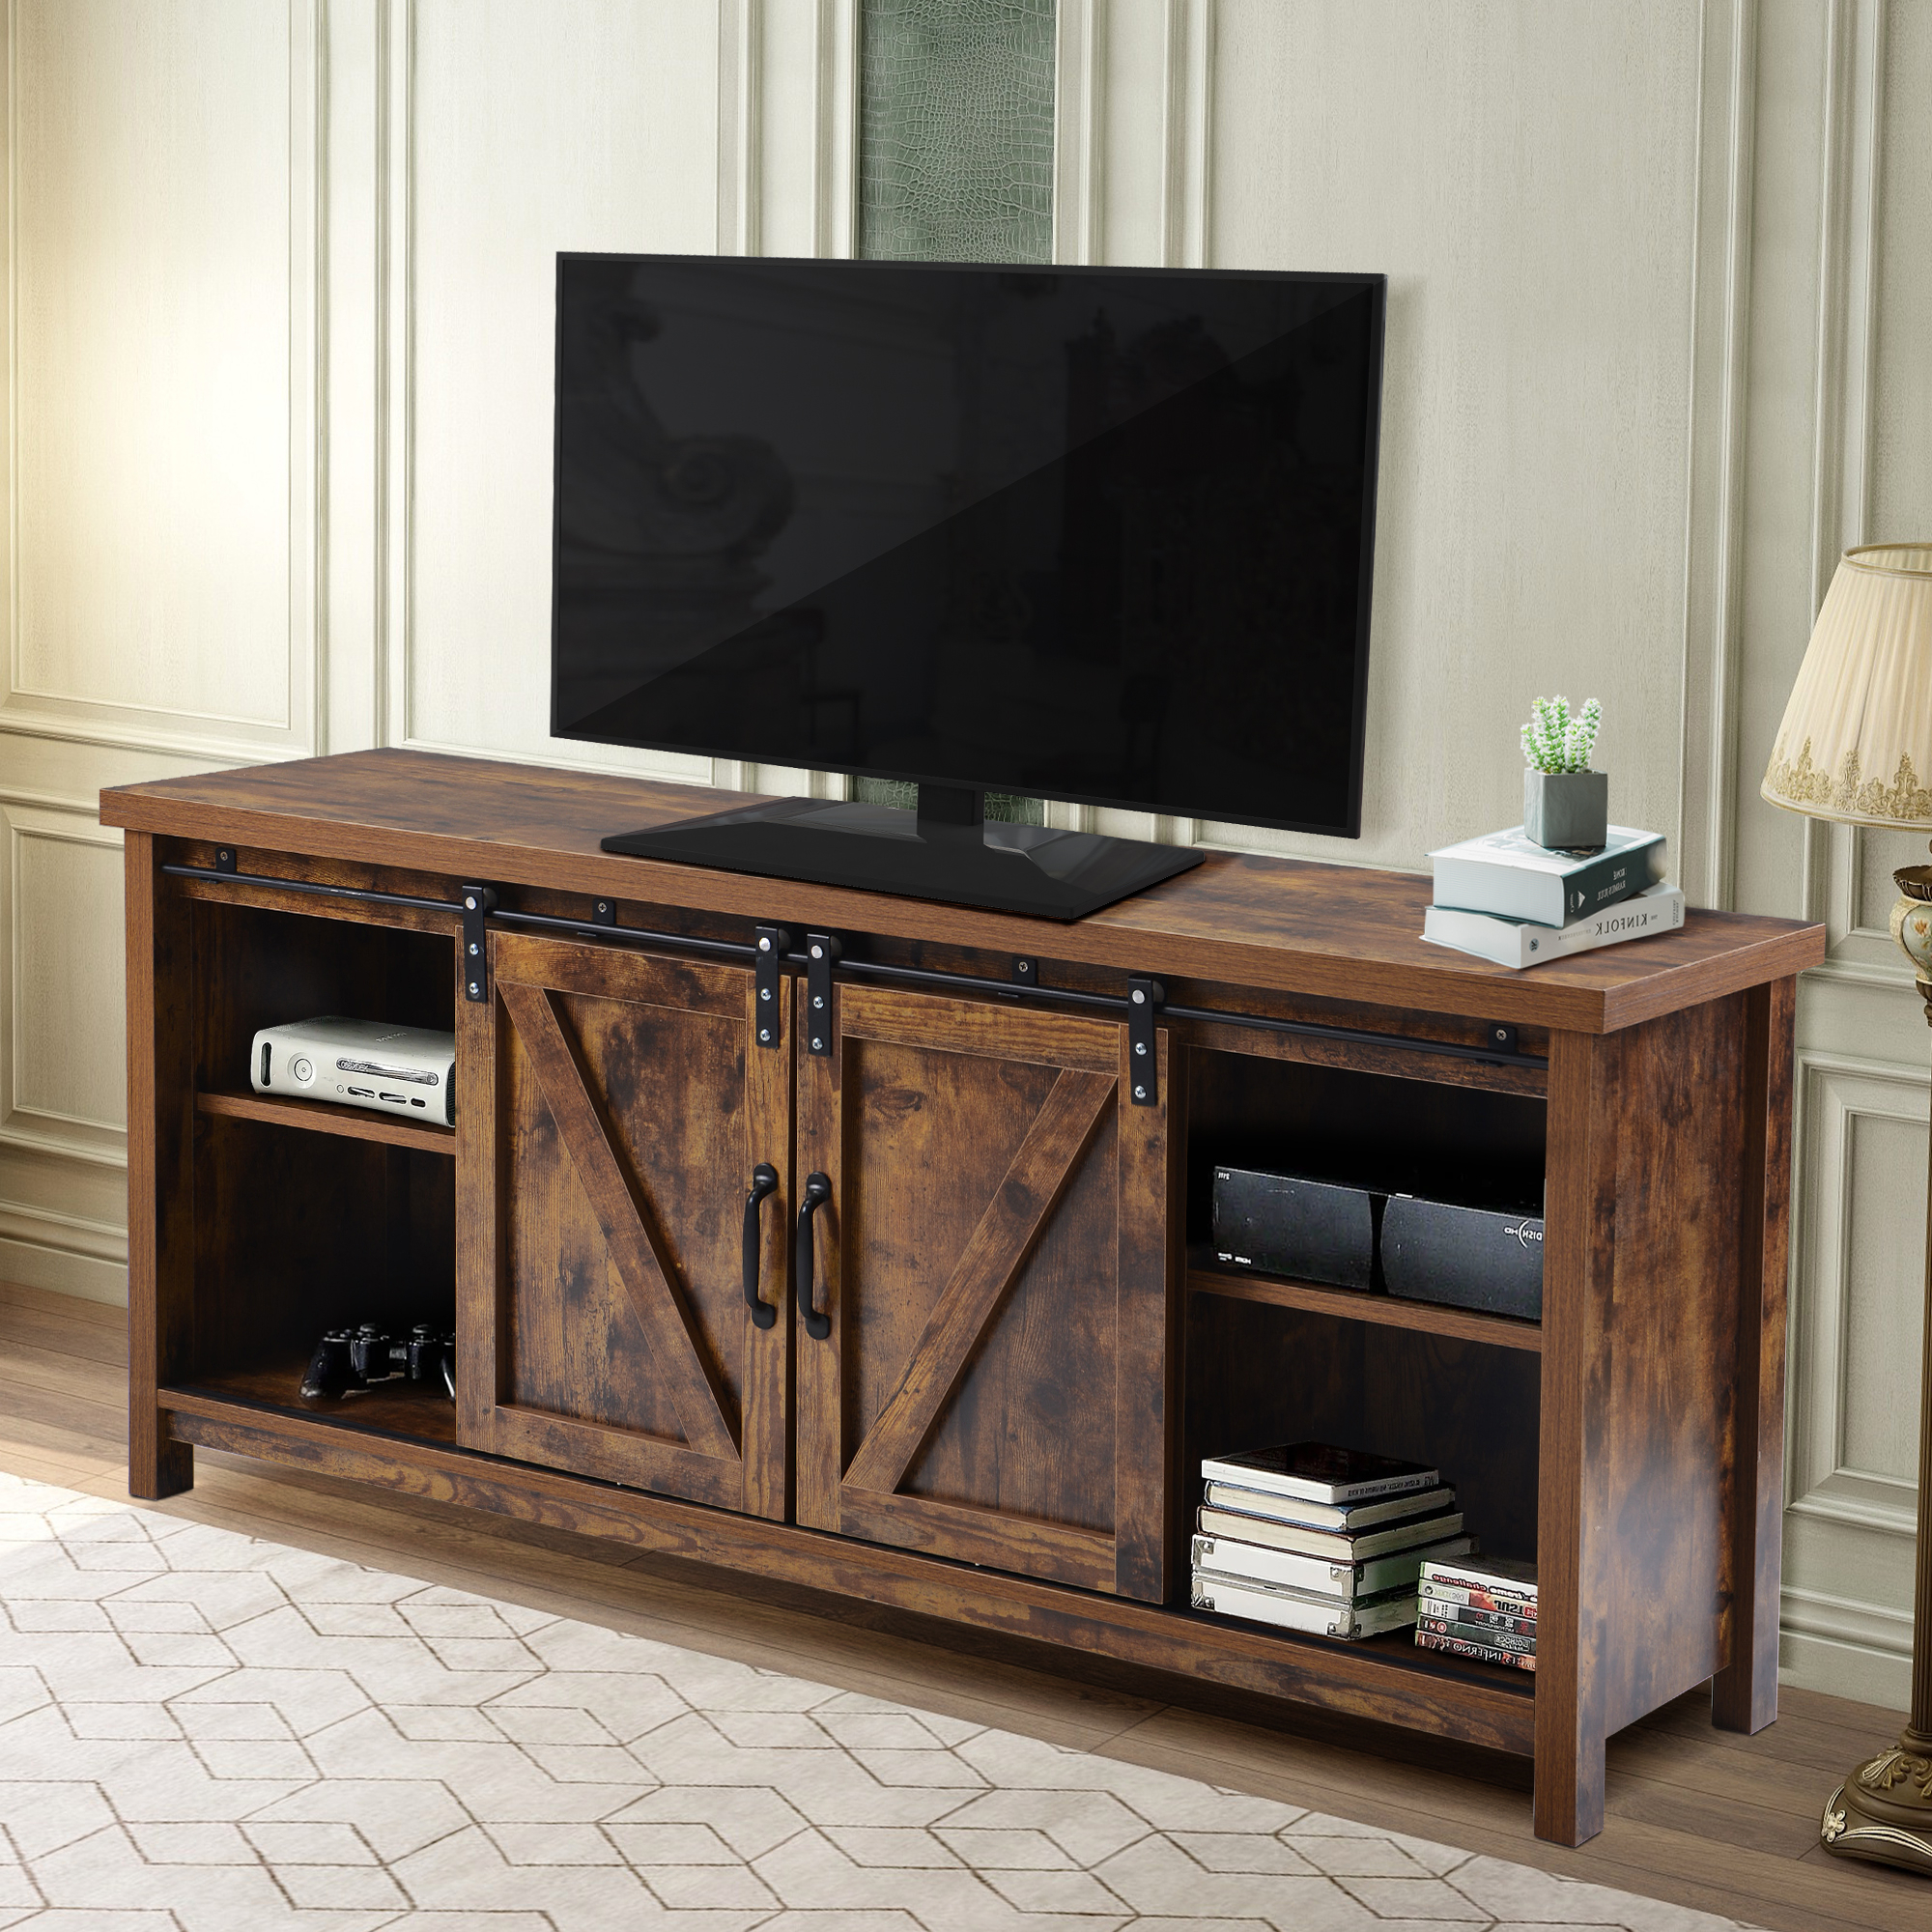 Universal Tv Stand, Modern Wood Tv Stands, Tv Stand For Inside Modern 2 Glass Door Corner Tv Stands (View 1 of 20)